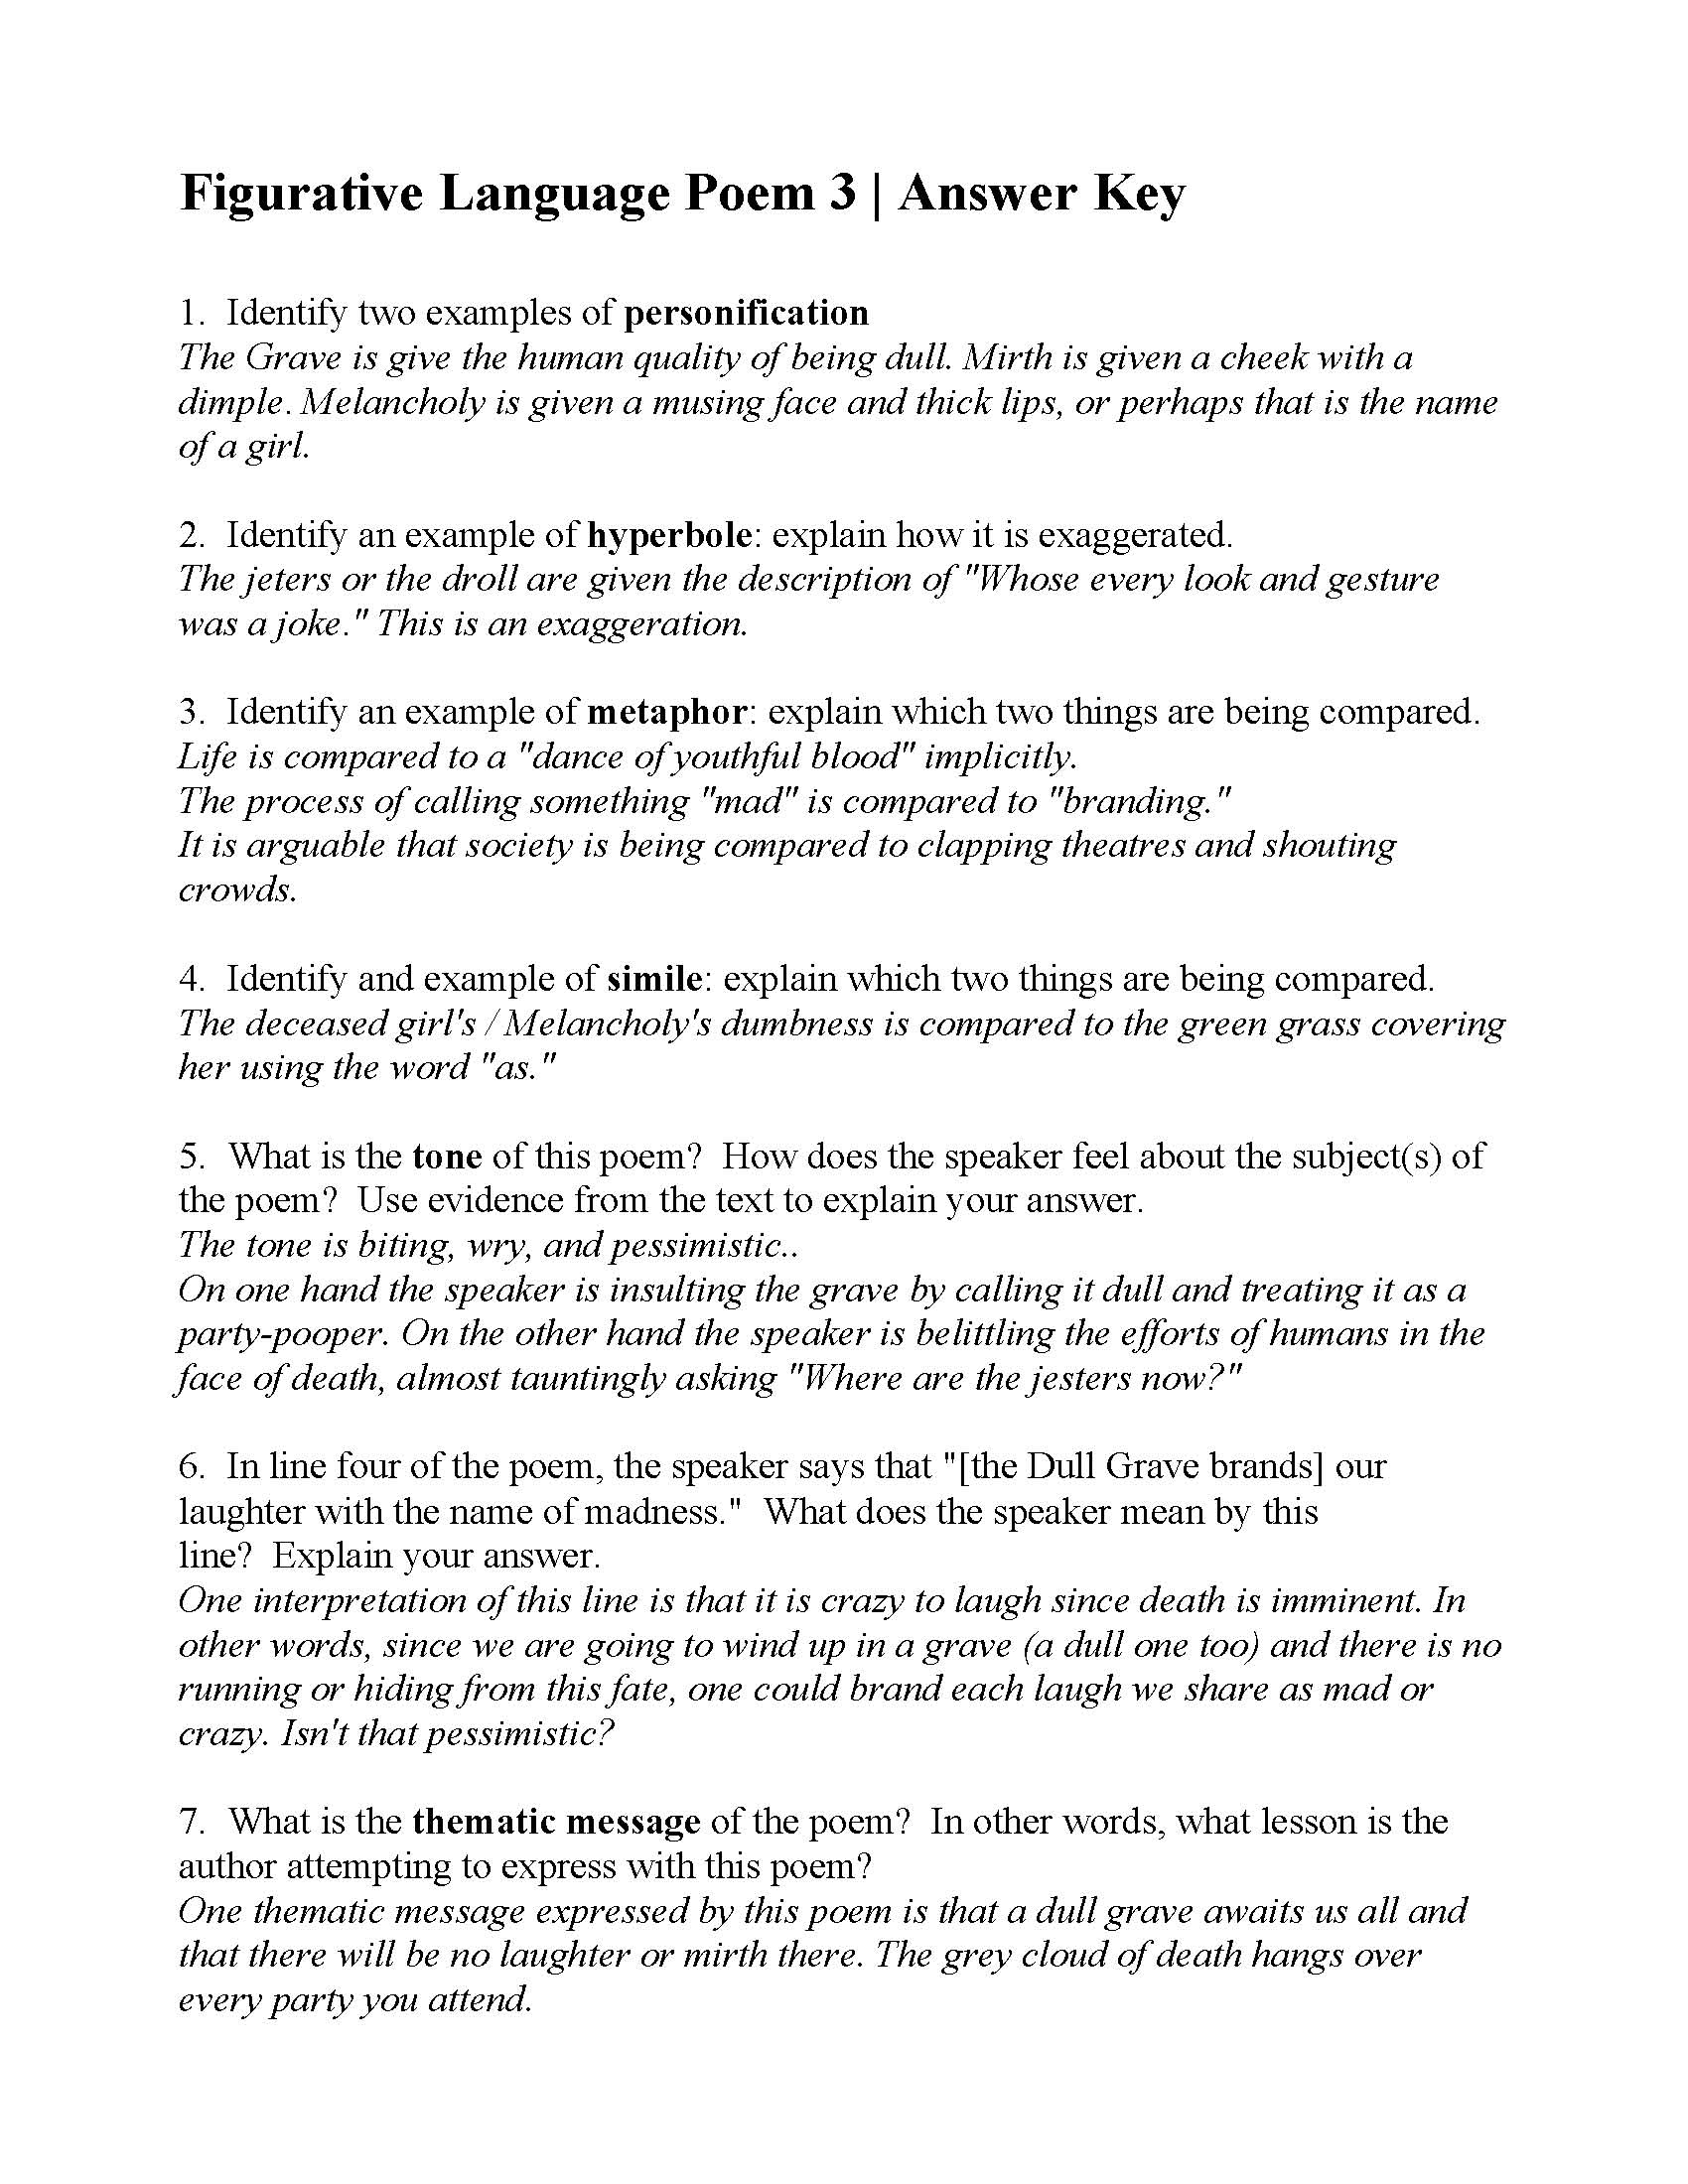 Worksheets Figurative Language Review Worksheet figurative language poem 3 from the grave by robert blair answers this is answer key for by